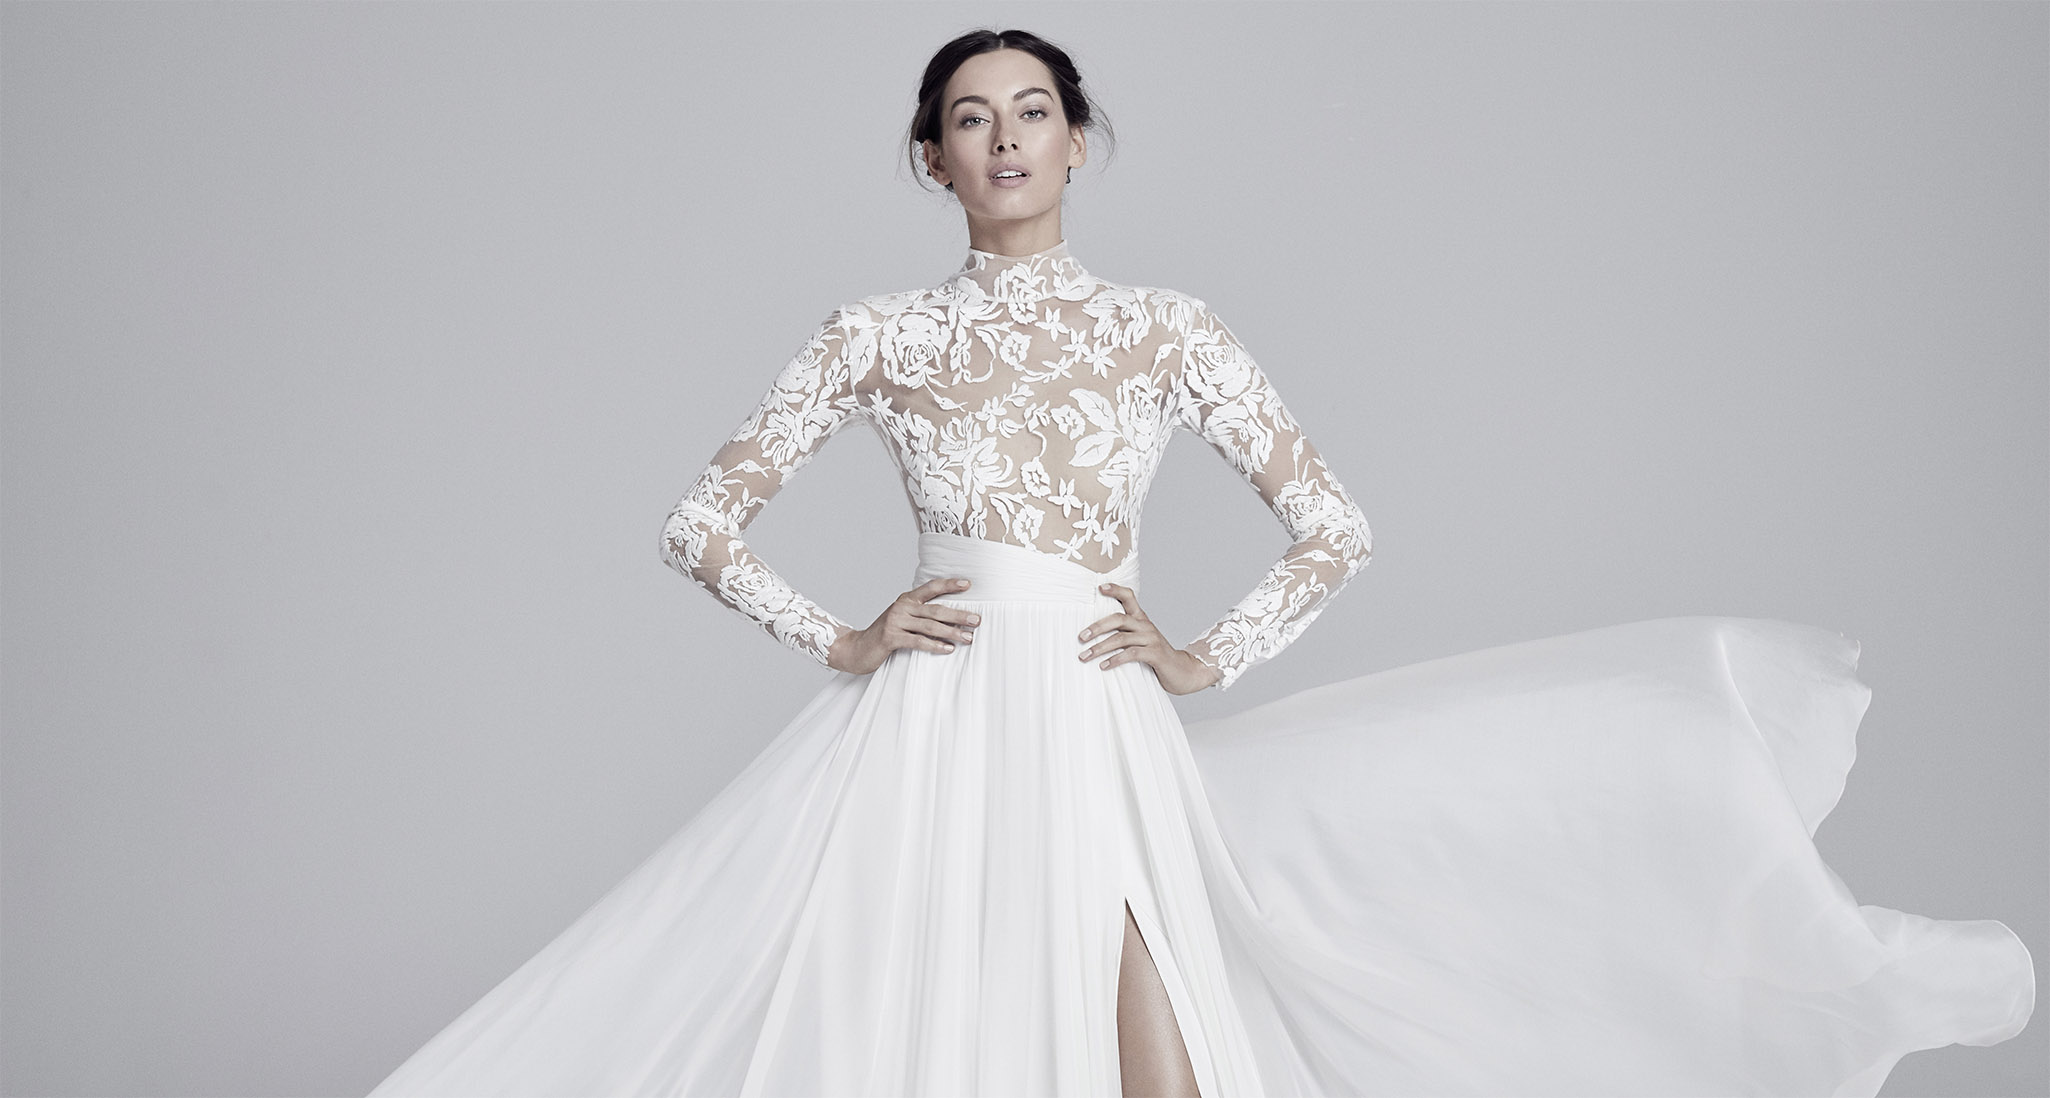 caaed9ebc9 Wedding Dresses & Couture Bridal Gowns by designer Suzanne Neville